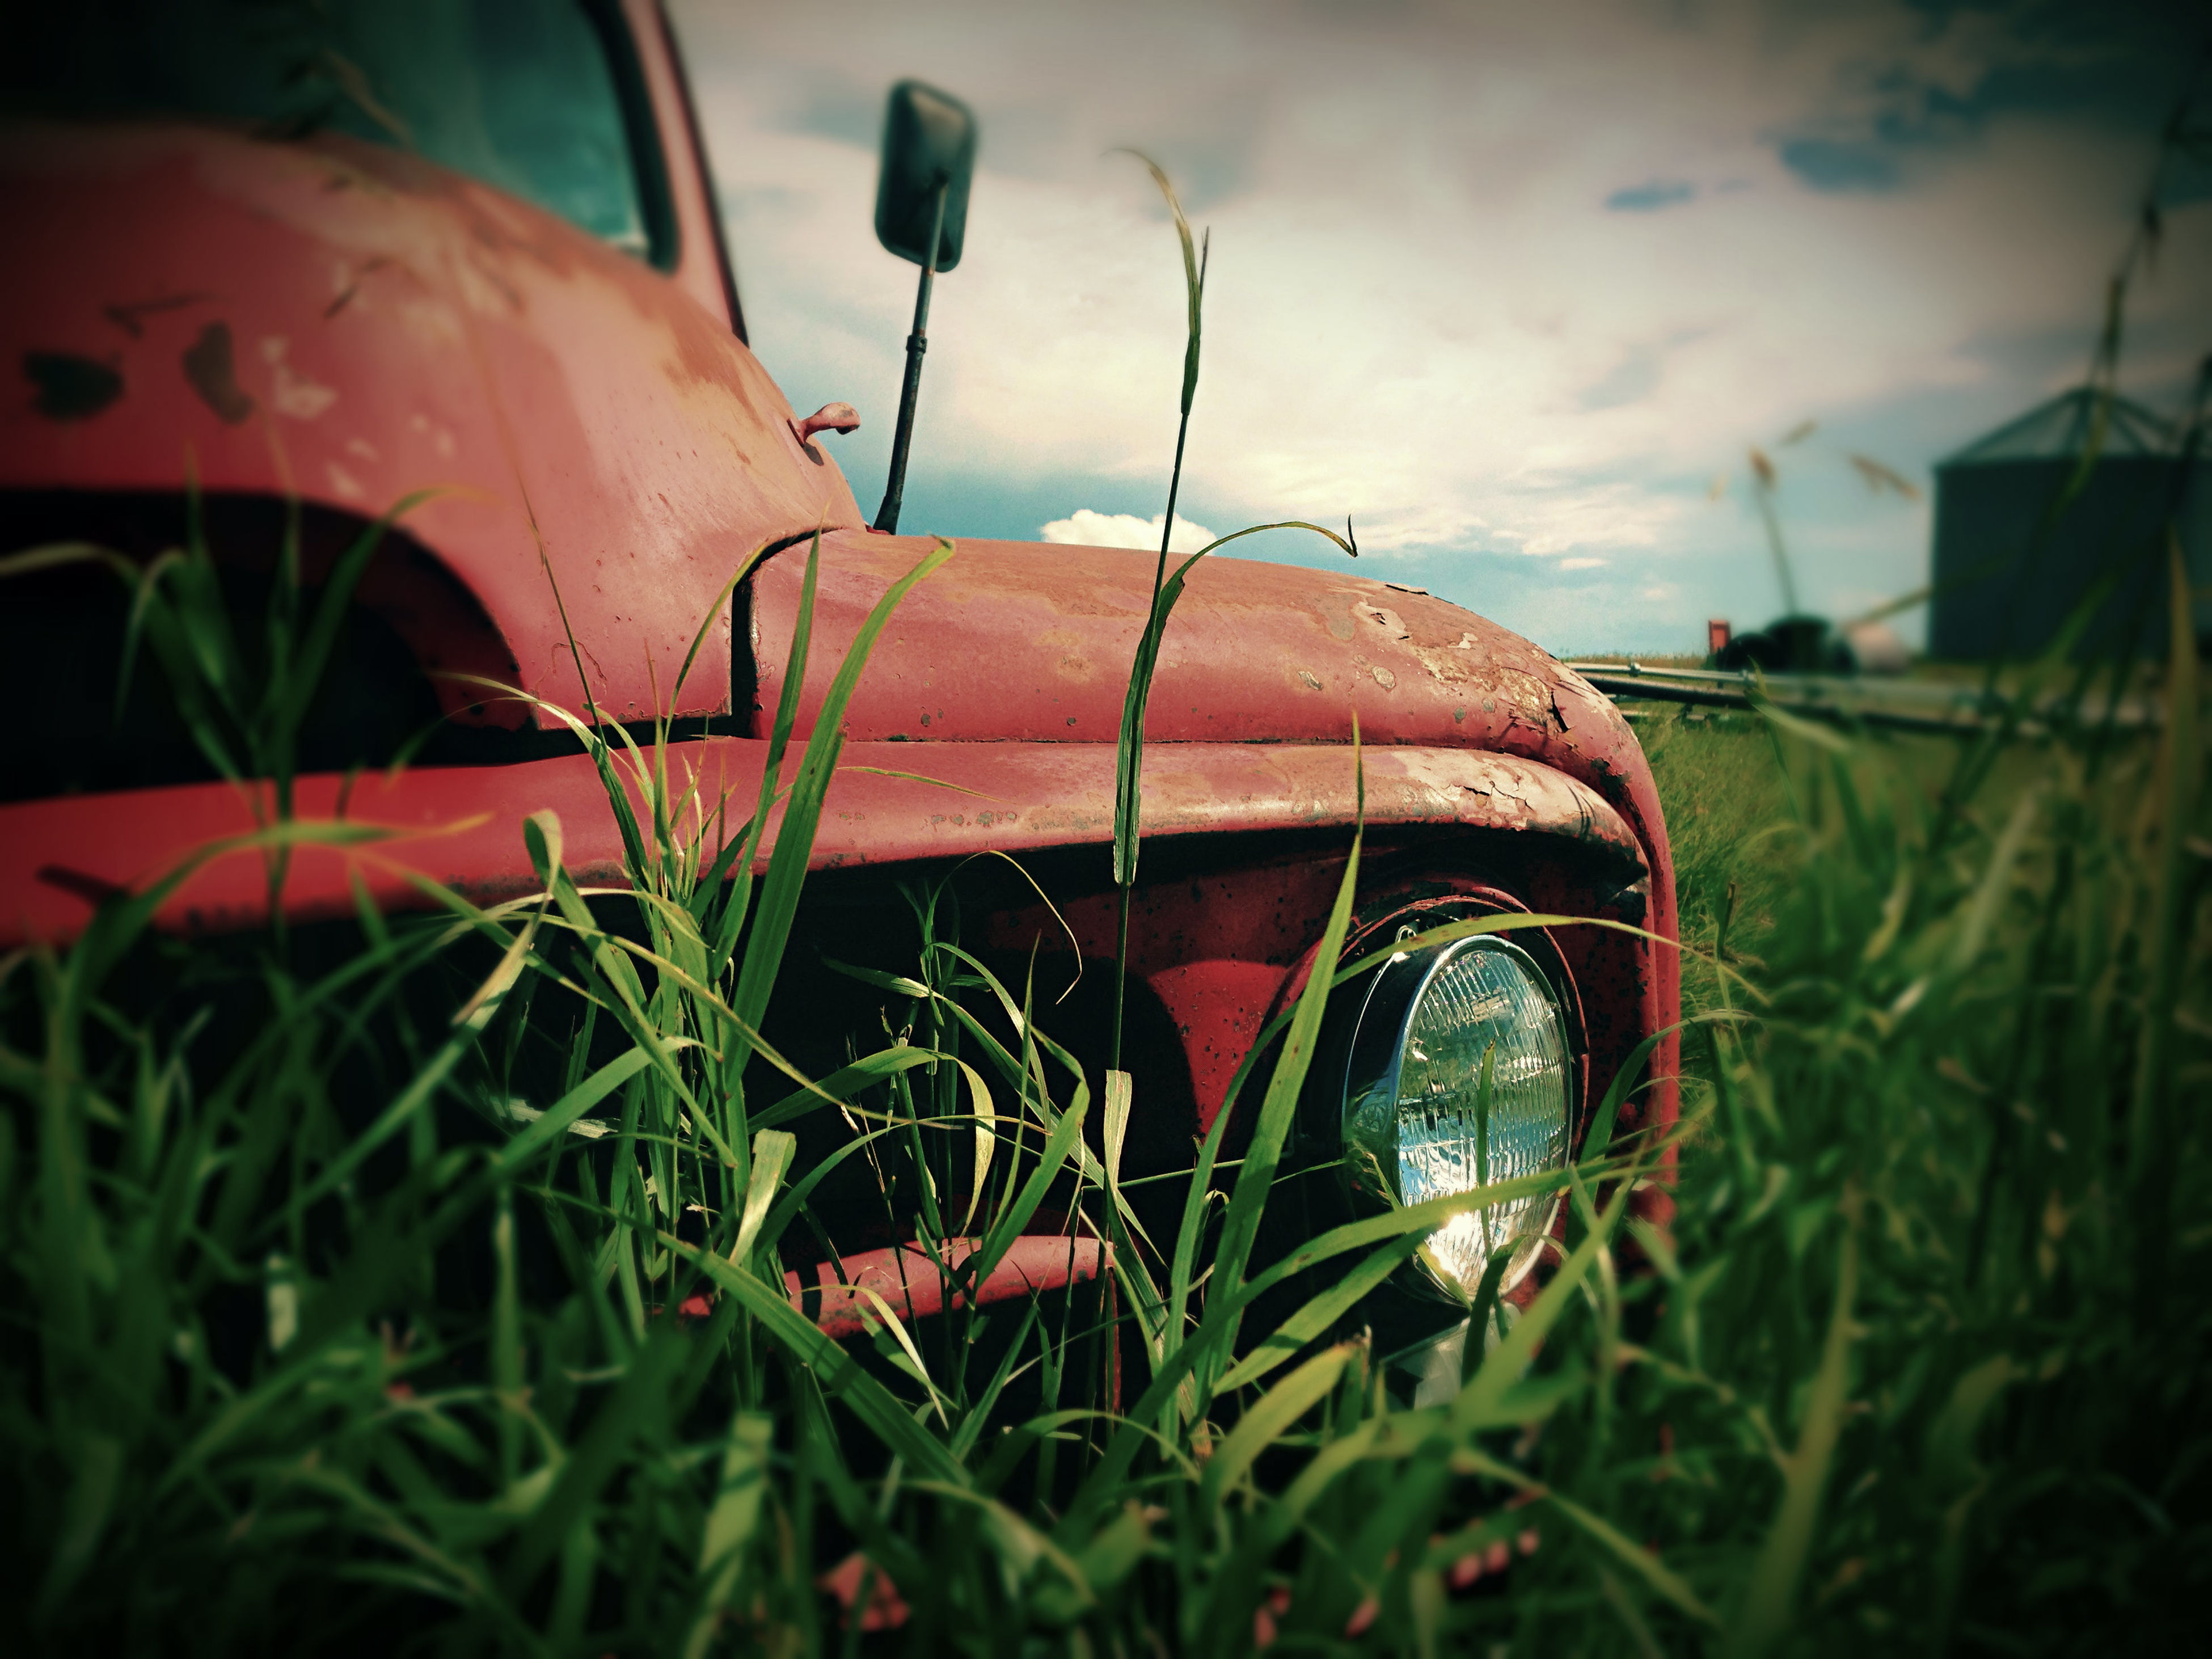 grass, field, grassy, close-up, sky, transportation, plant, mode of transport, abandoned, outdoors, red, no people, growth, nature, day, damaged, focus on foreground, selective focus, green color, metal